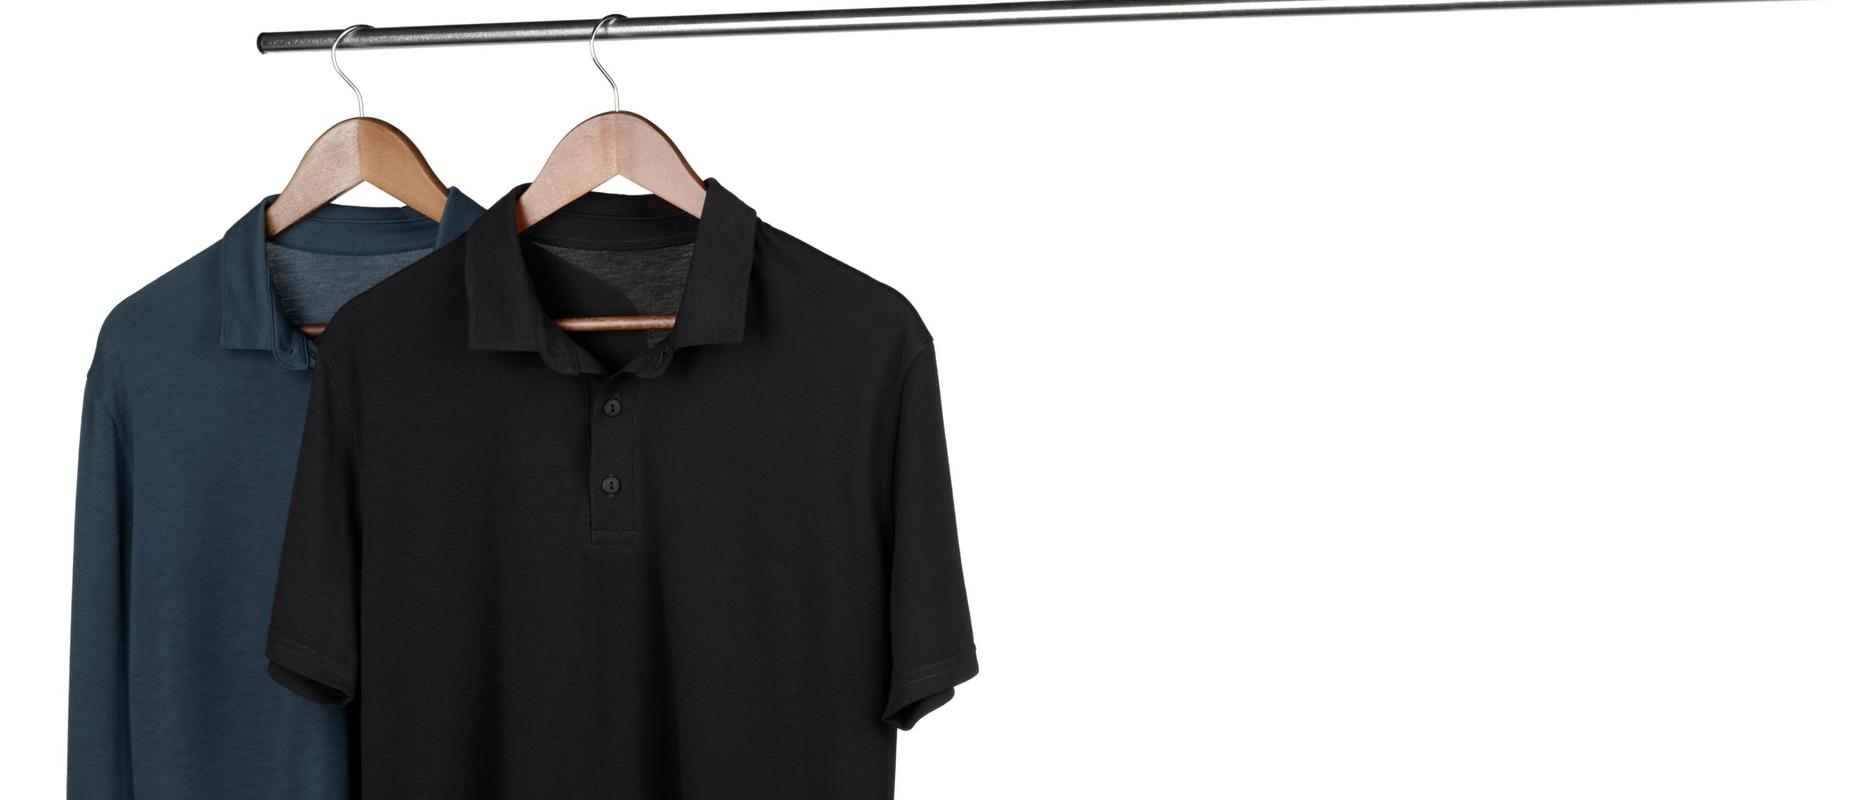 StringKing Apparel Athletic Polo Light Navy Black Feature